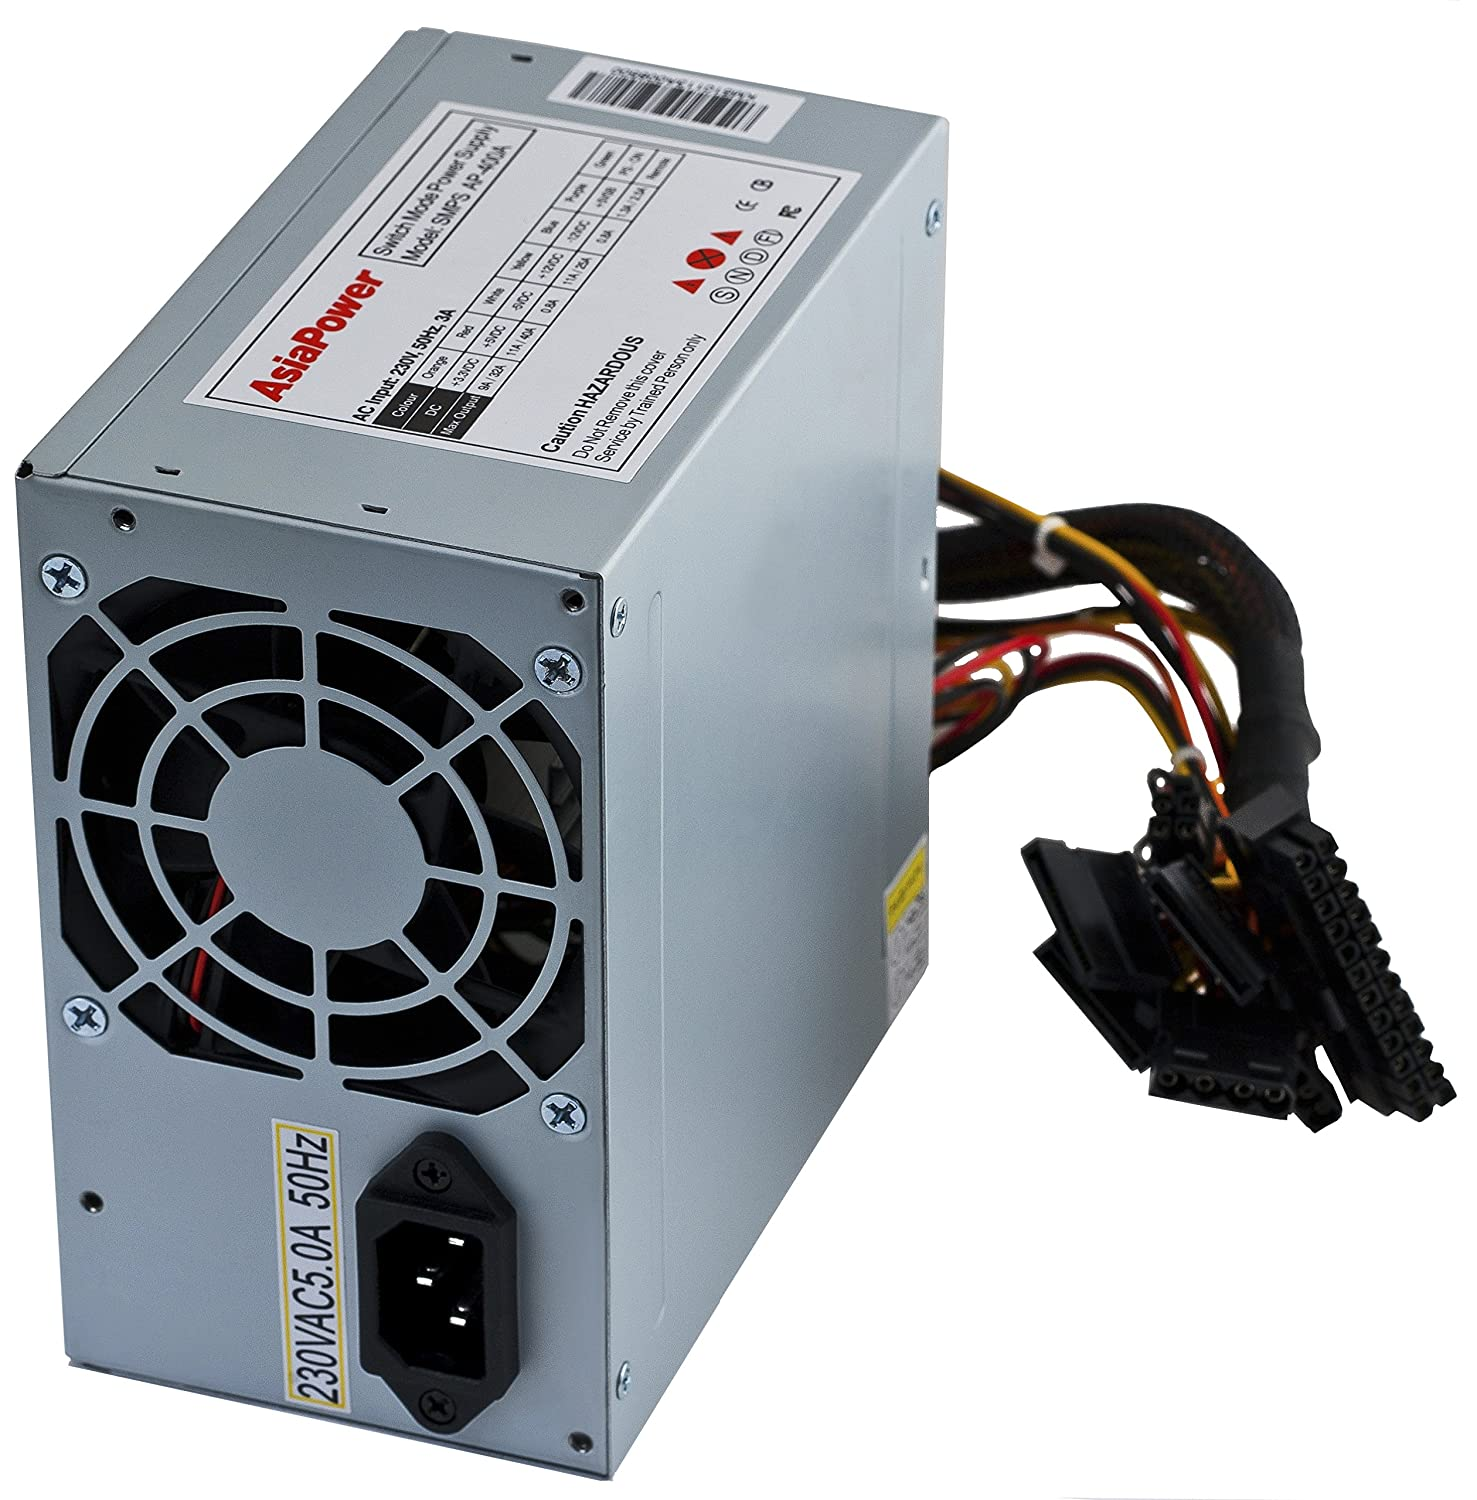 Amazon.in: Buy AsiaPower AP-500 Gold SMPS Online at Low Prices in ...